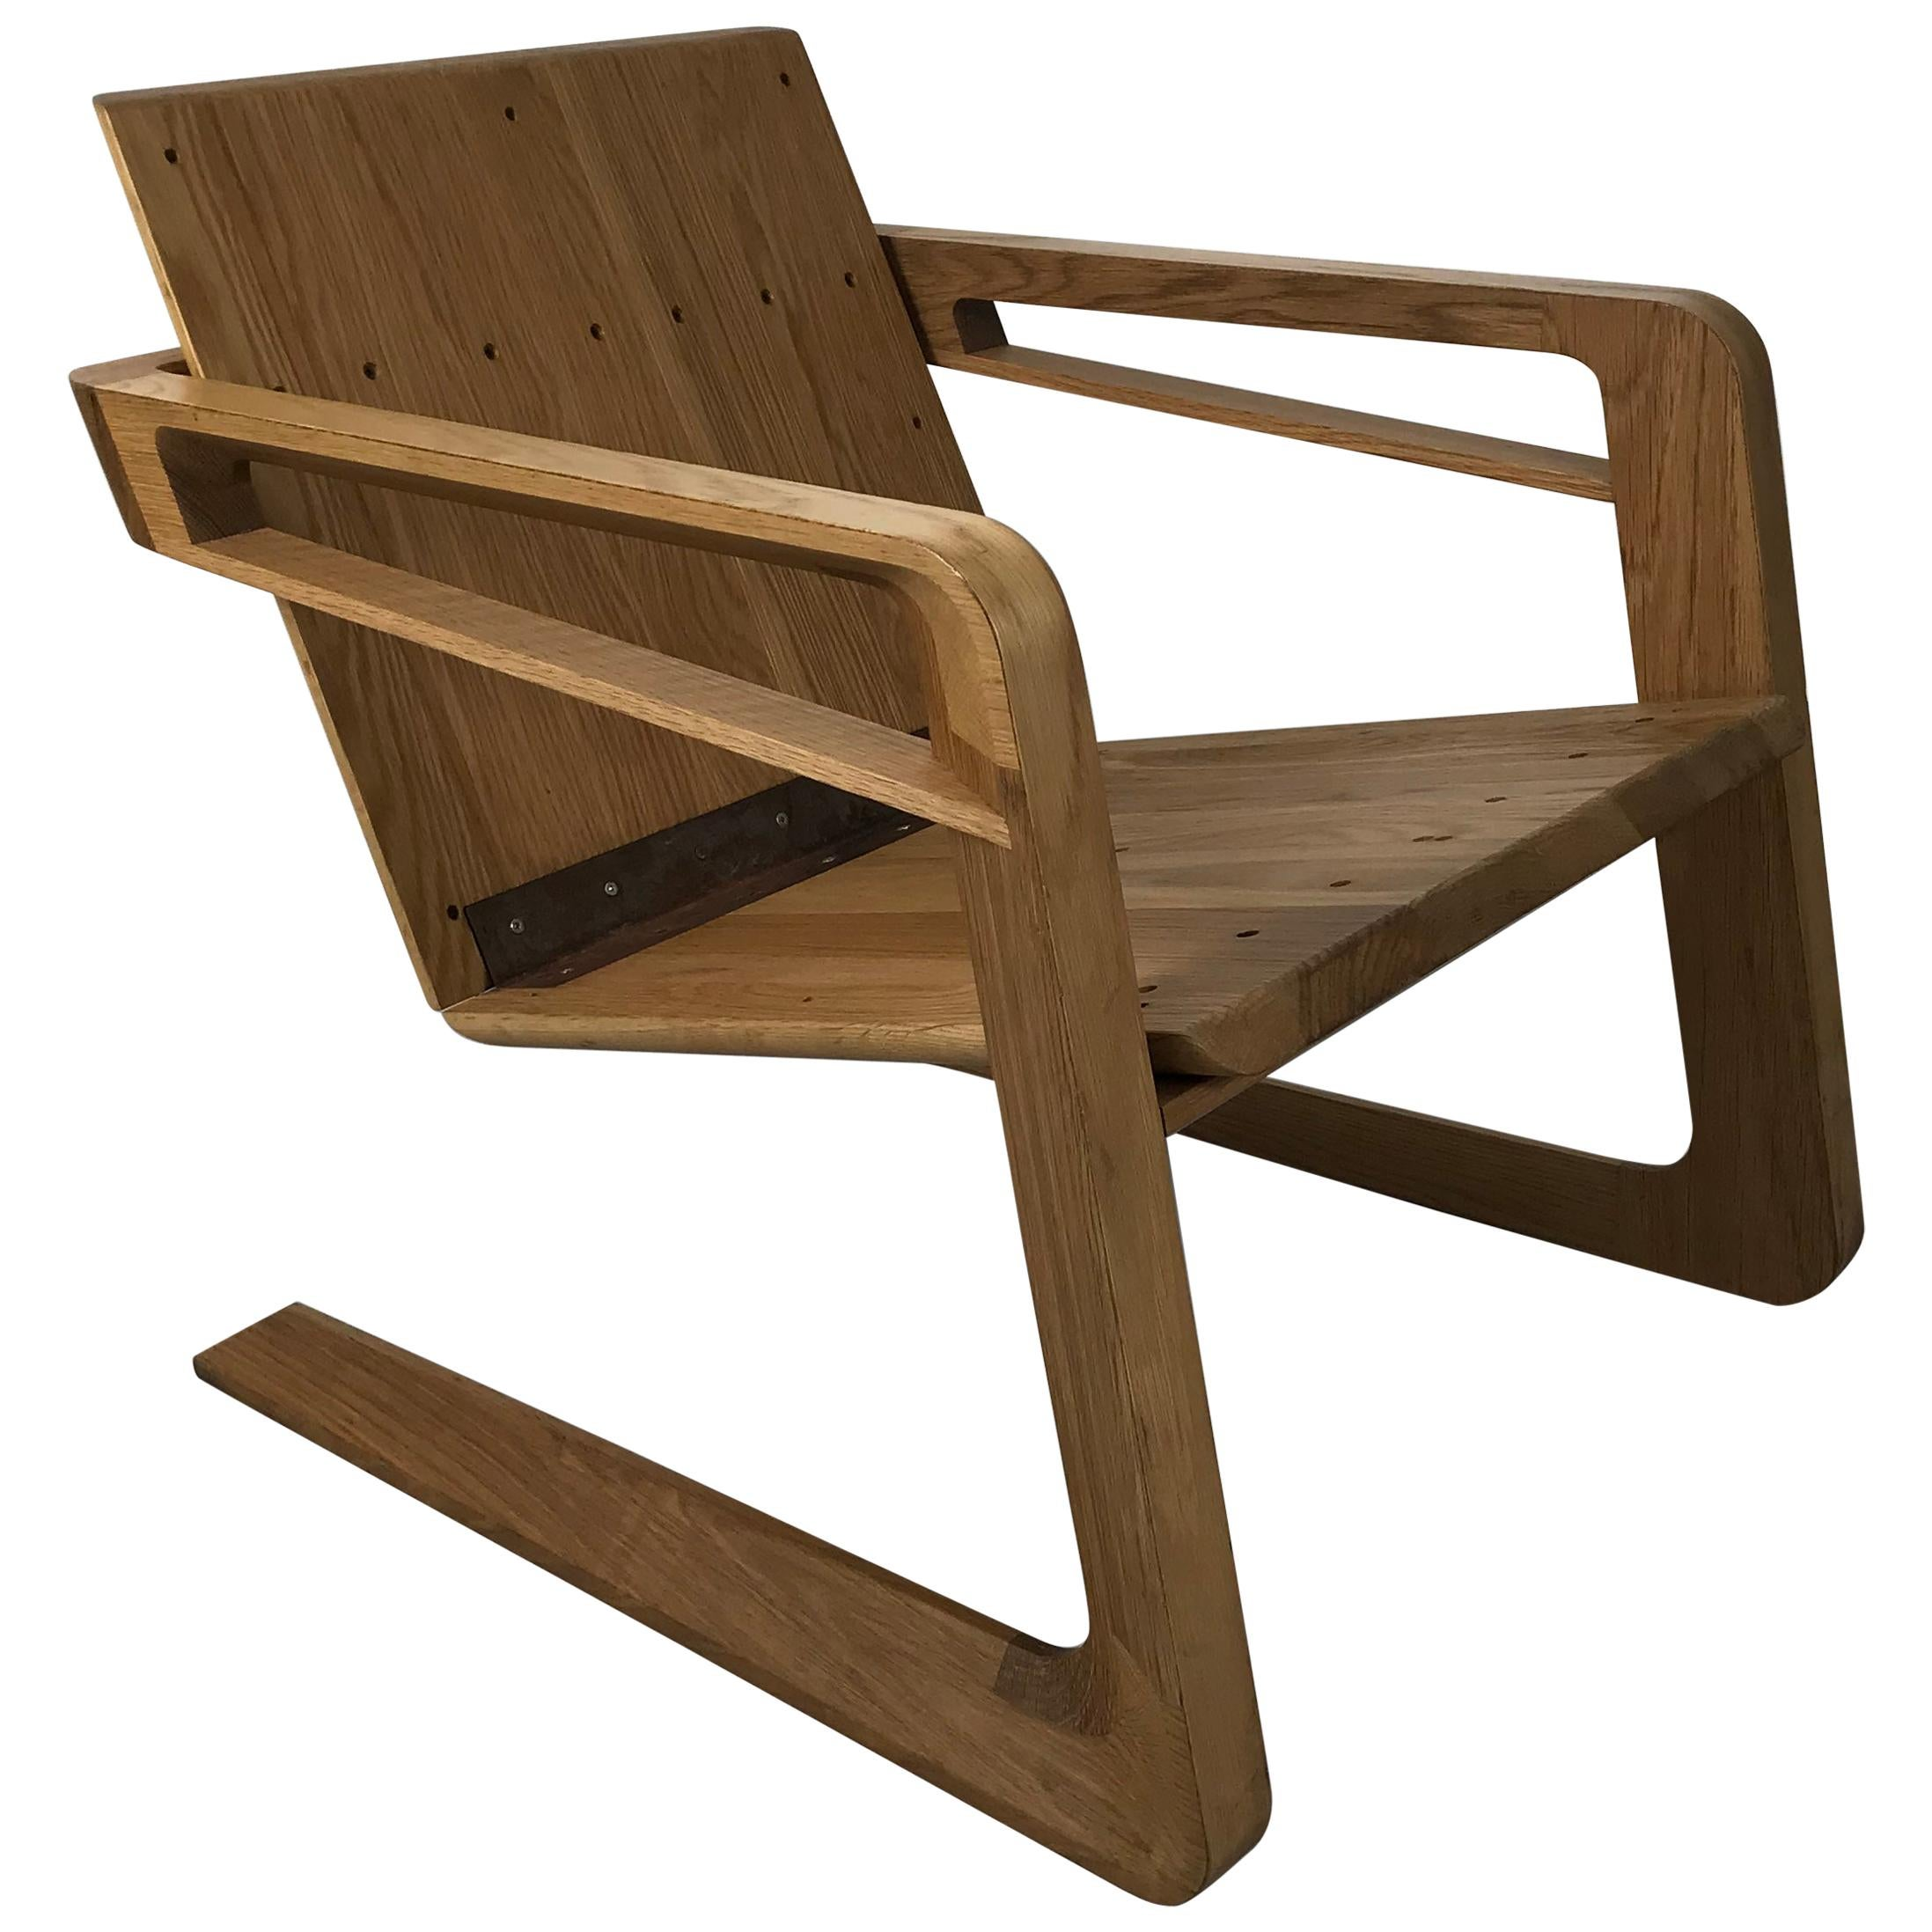 Cory Grosser 009 Airline Chair, After Famed 1934 Airline Chair by Kem Weber